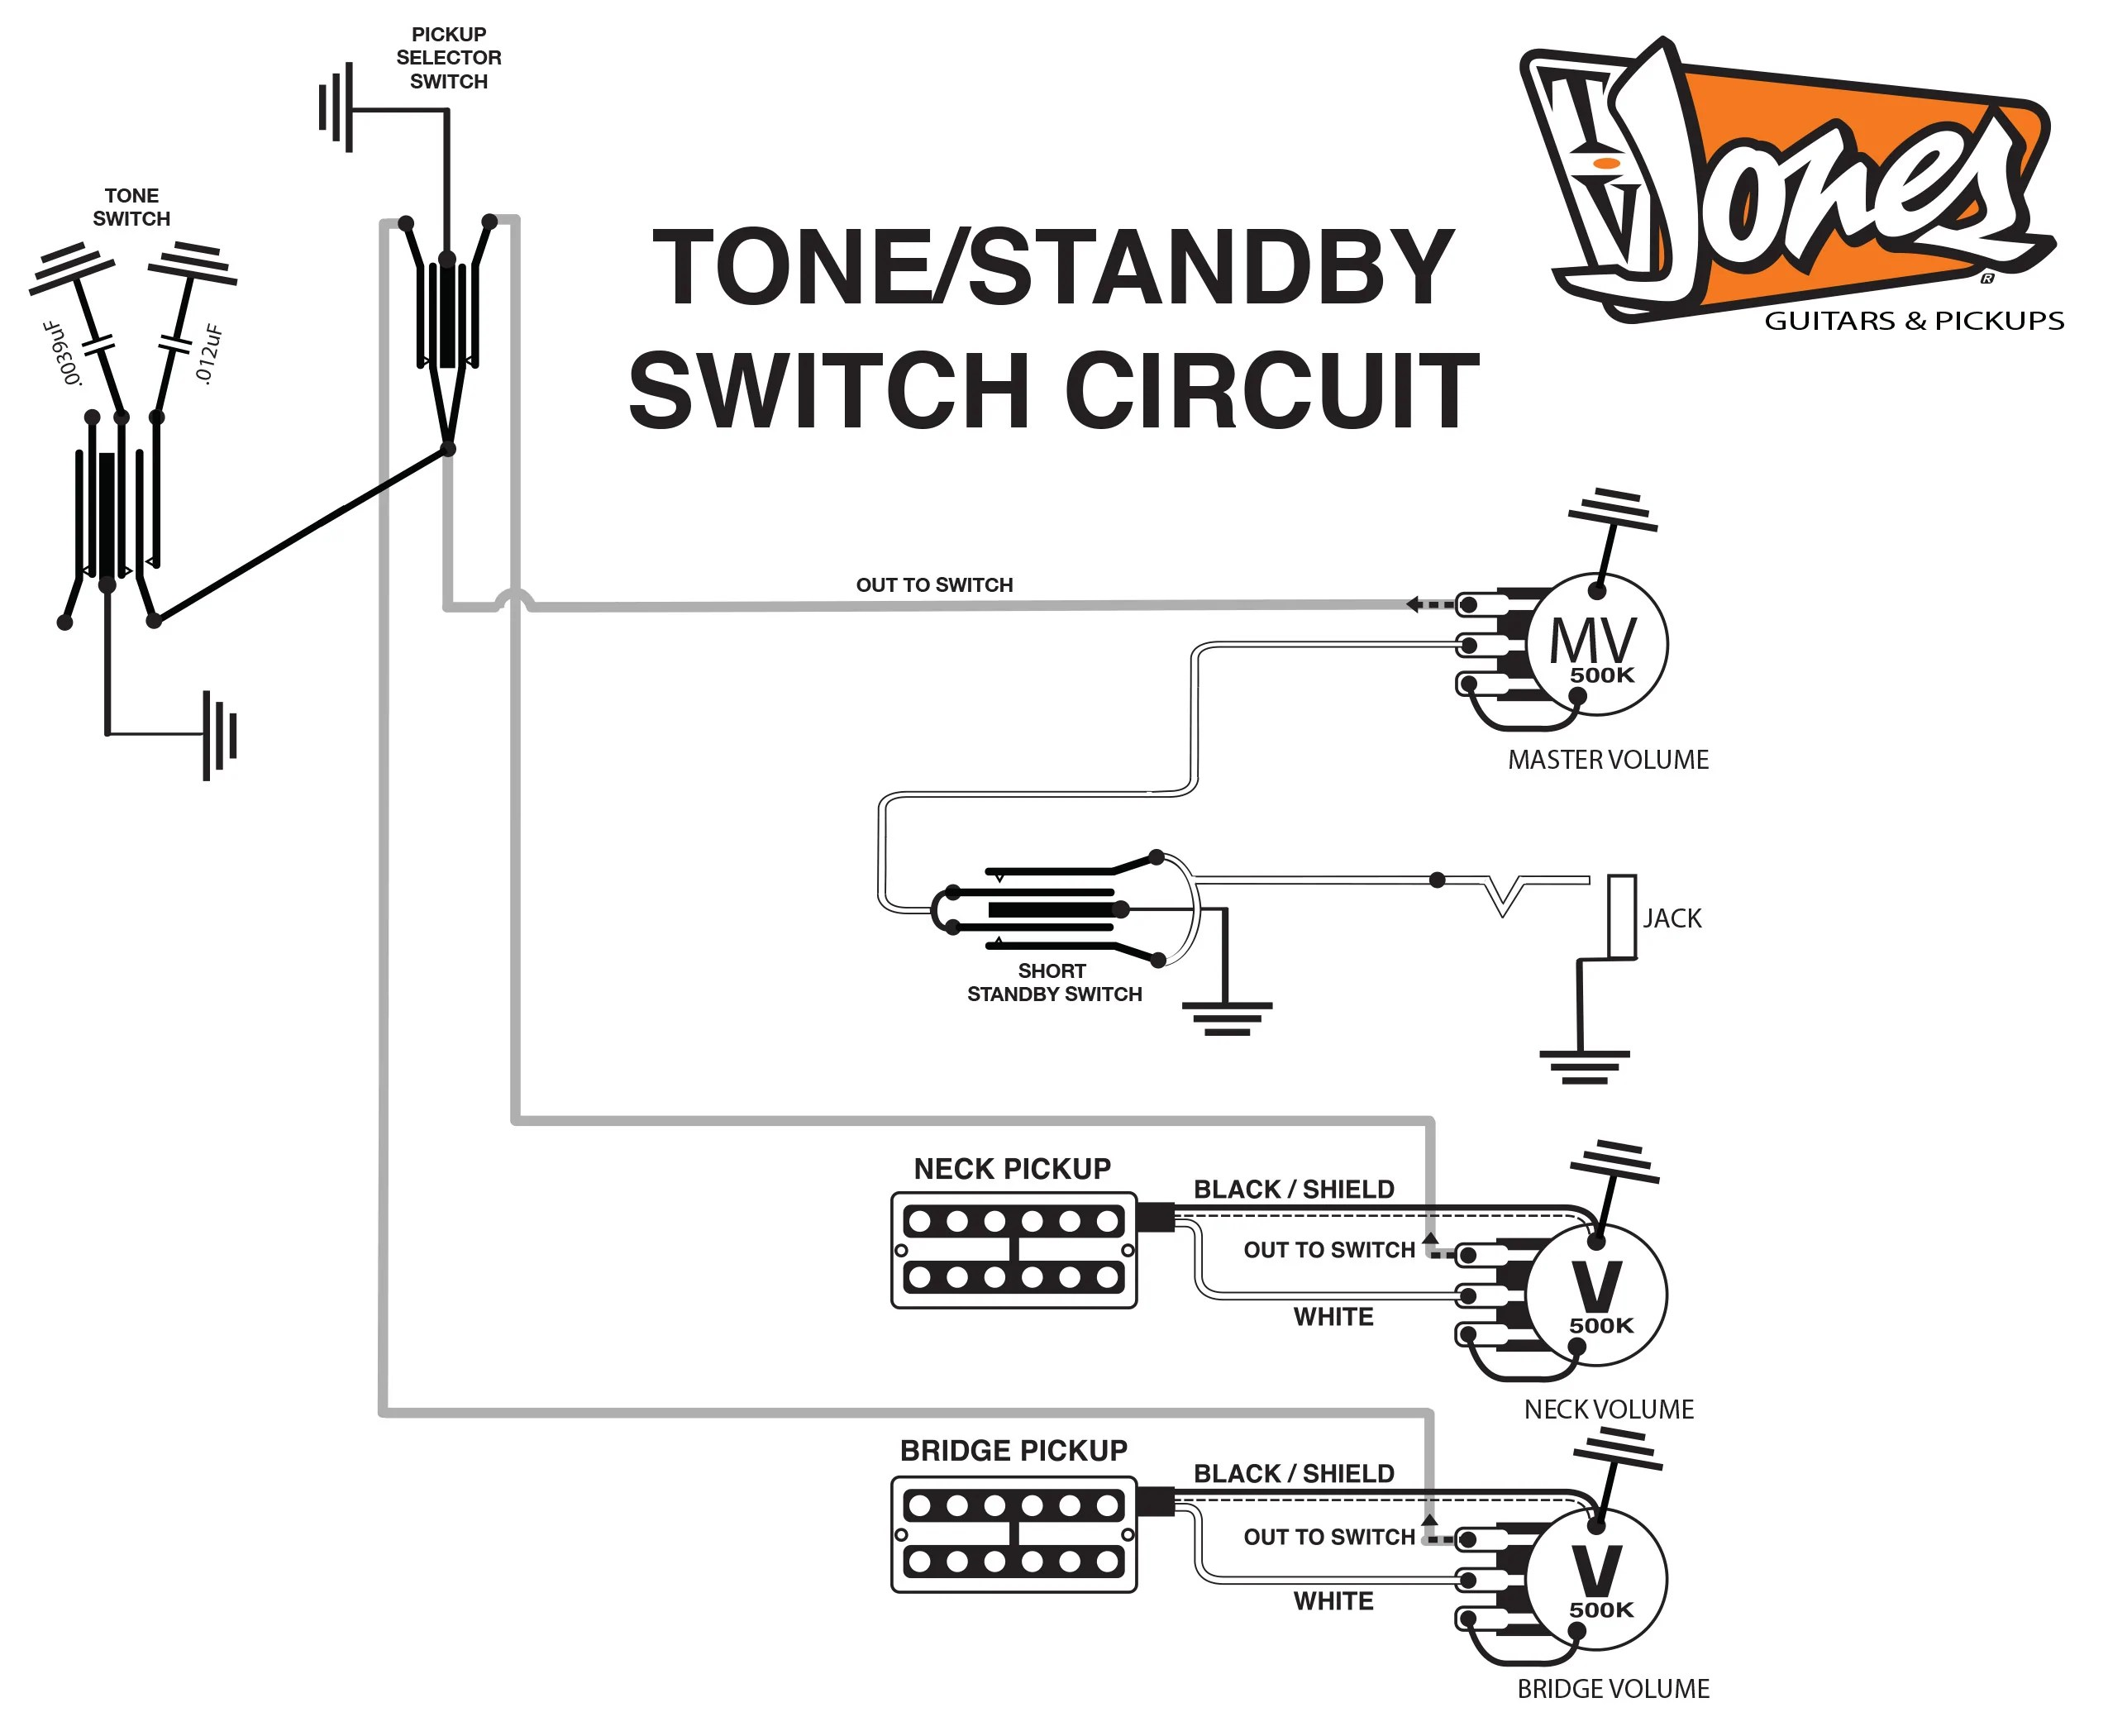 gretsch wiring diagram wiring diagram dat gretsch synchromatic wiring diagram [ 2550 x 2100 Pixel ]